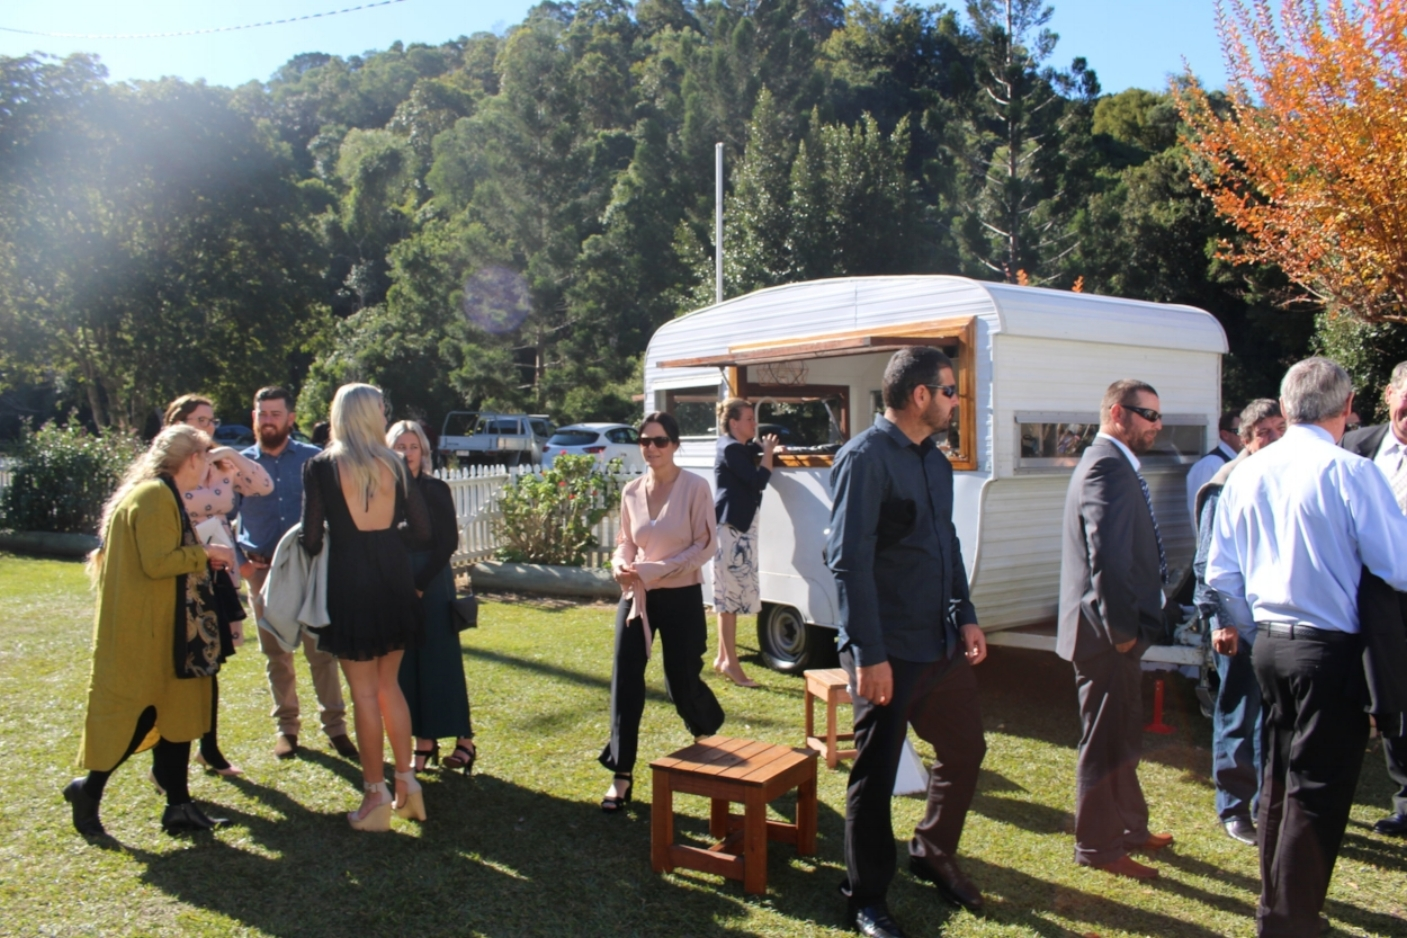 brisbane-wedding-venue-mobile-bar